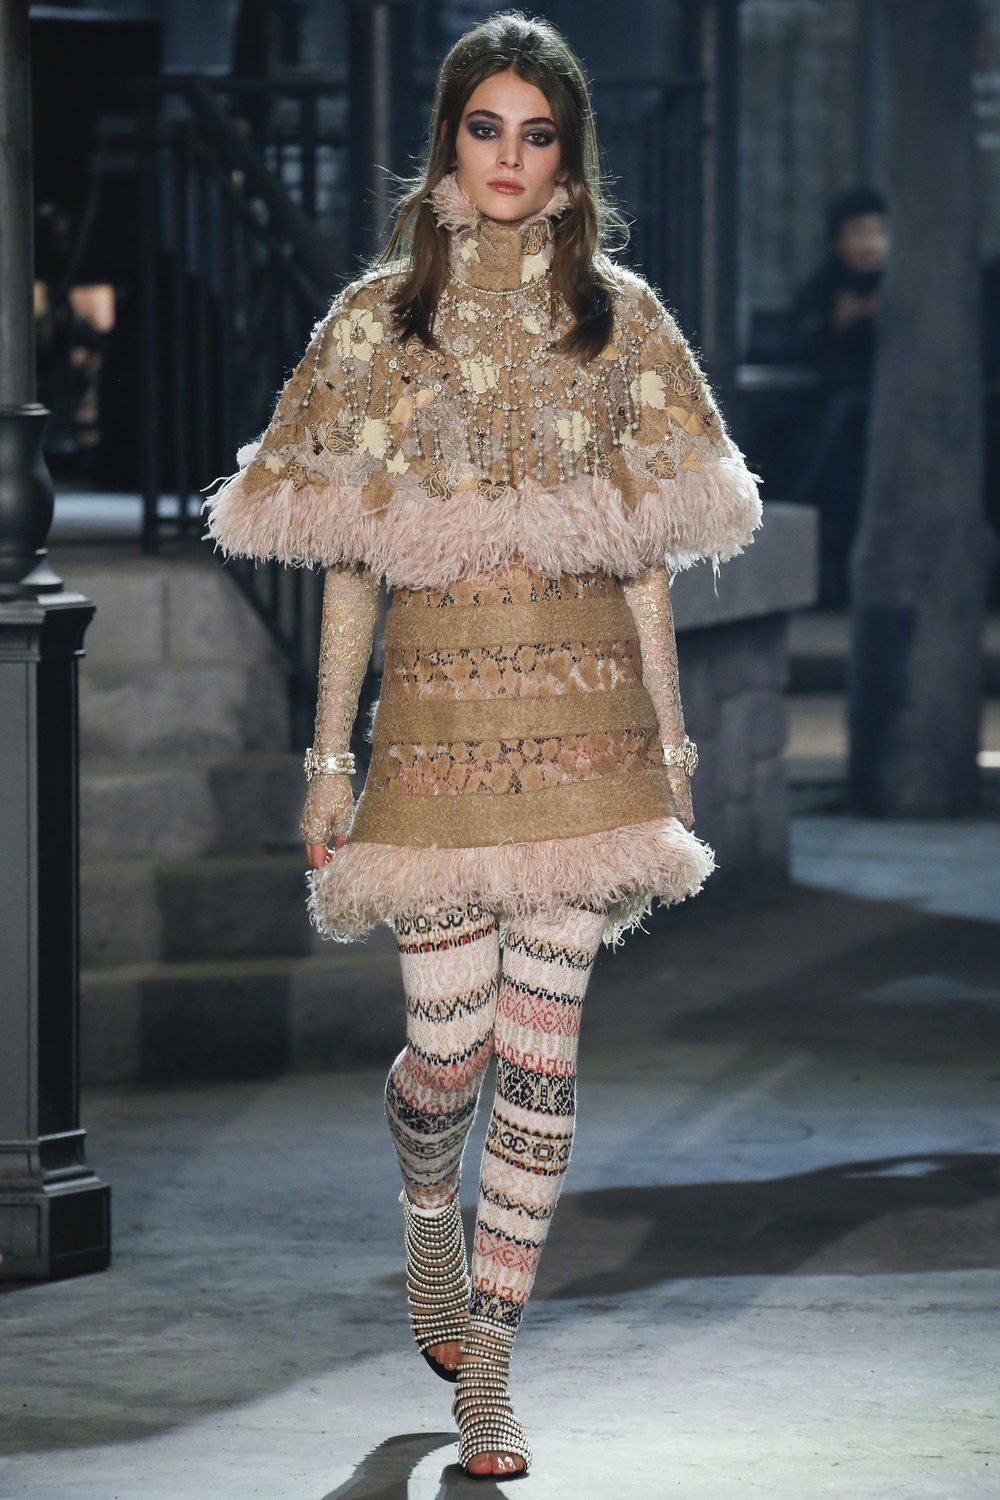 A model walks down the runway in an outfit from the Chanel Pre Fall 2016 collection.